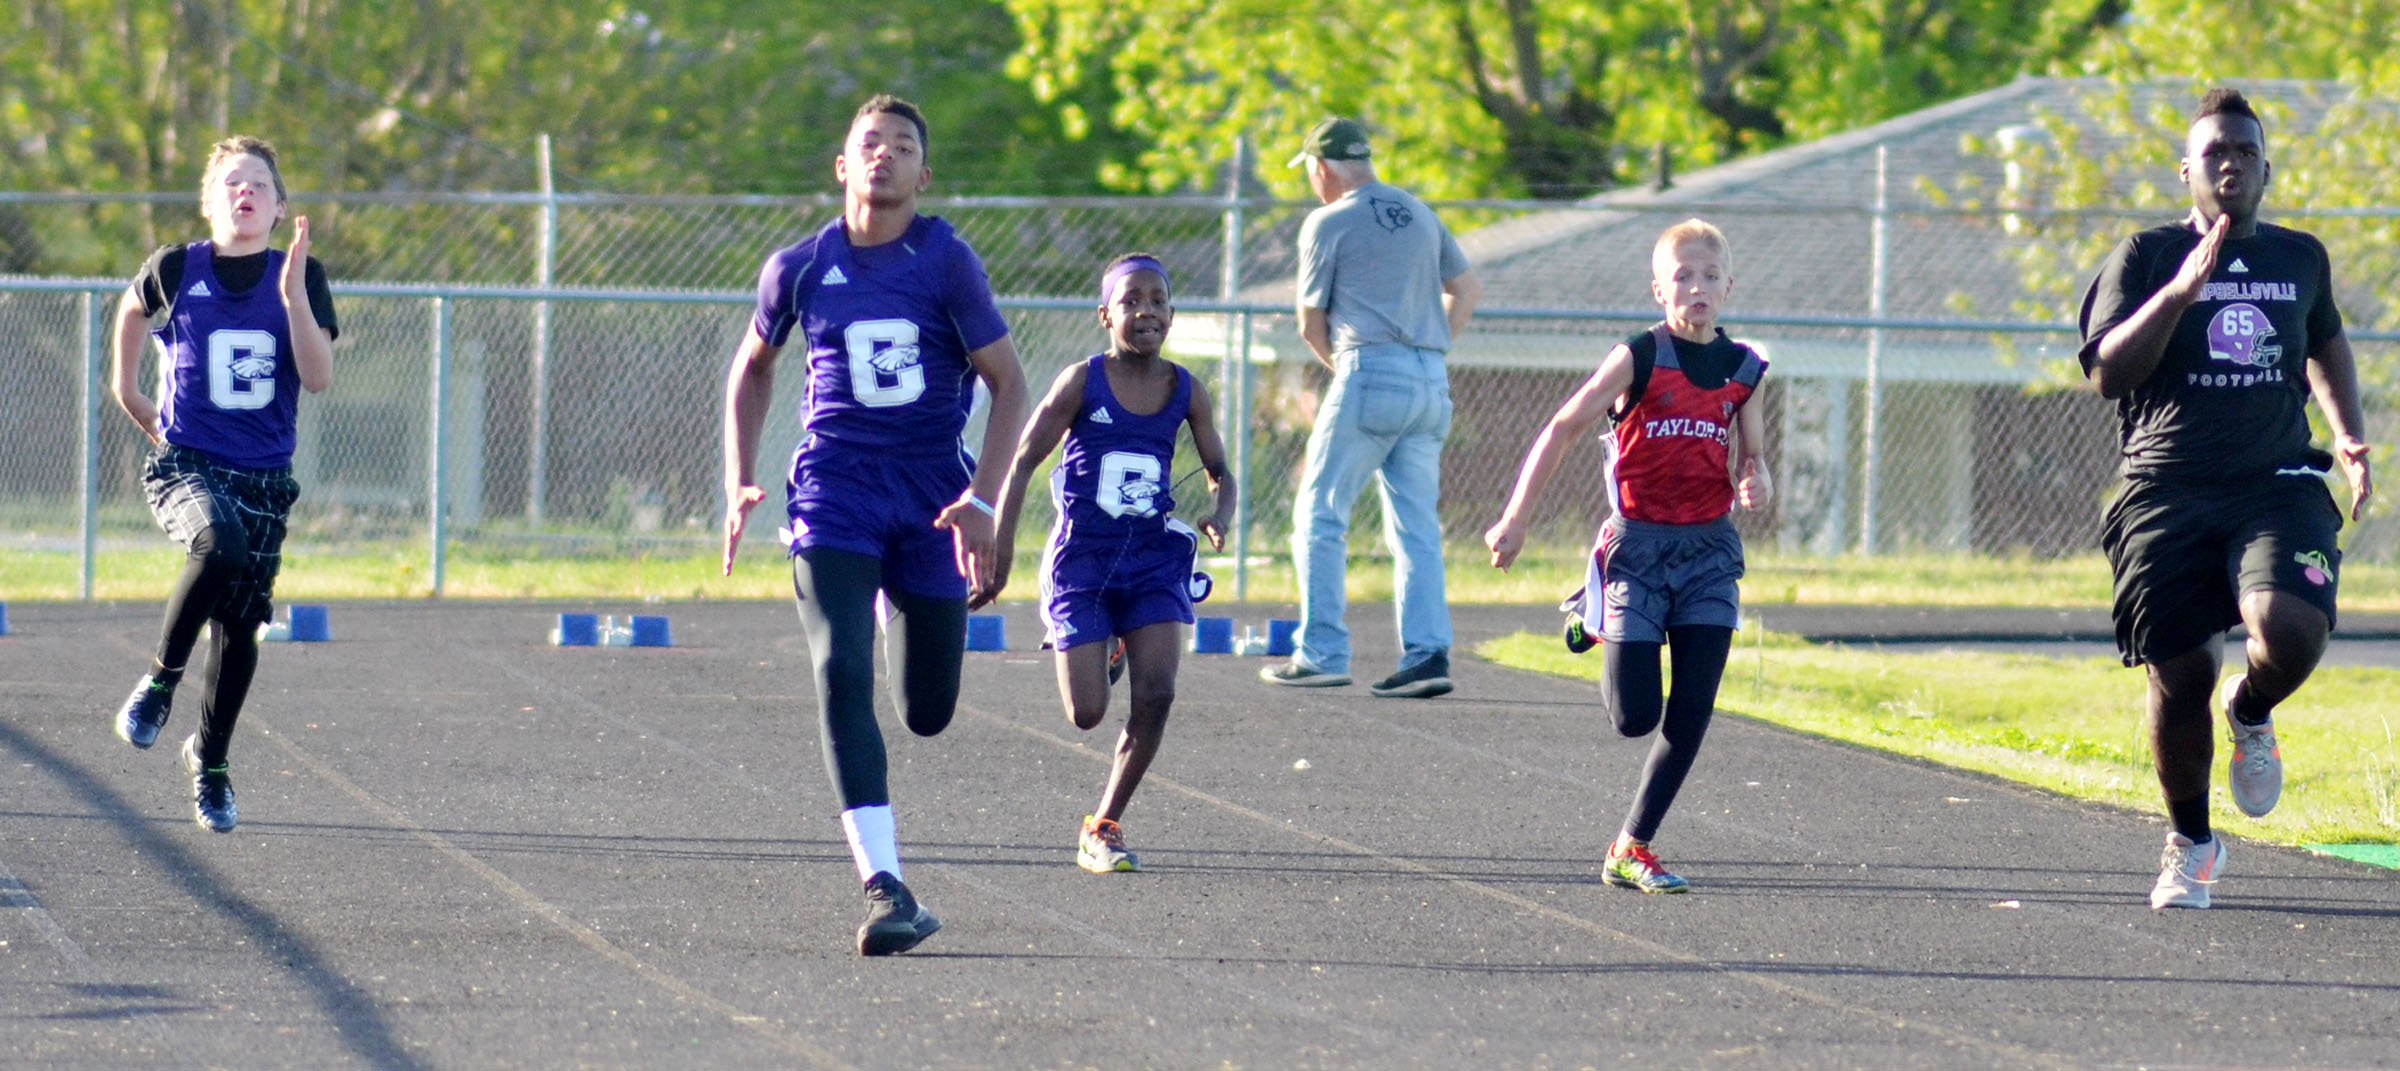 From left, Campbellsville Middle School seventh-grader Joshua Lucas, eighth-grader Reggie Thomas, seventh-grader Jadan Furman, and, at right, freshman Taekwon McCoy run.